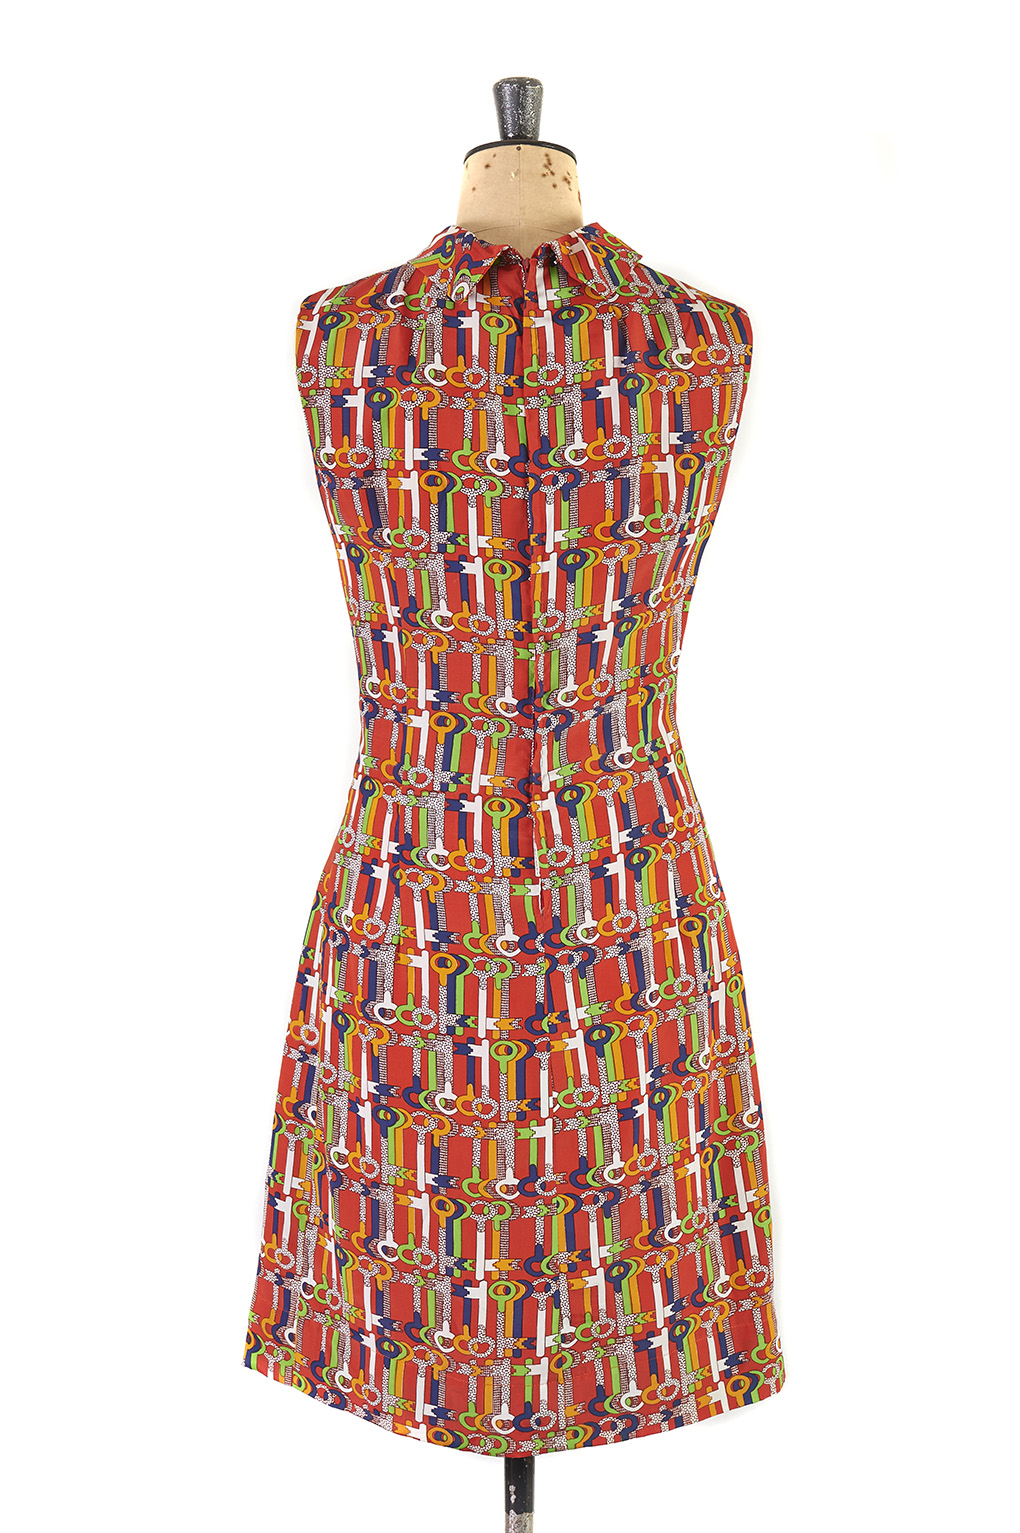 Key Print Dress by Marissa c. 1960s - Size 10